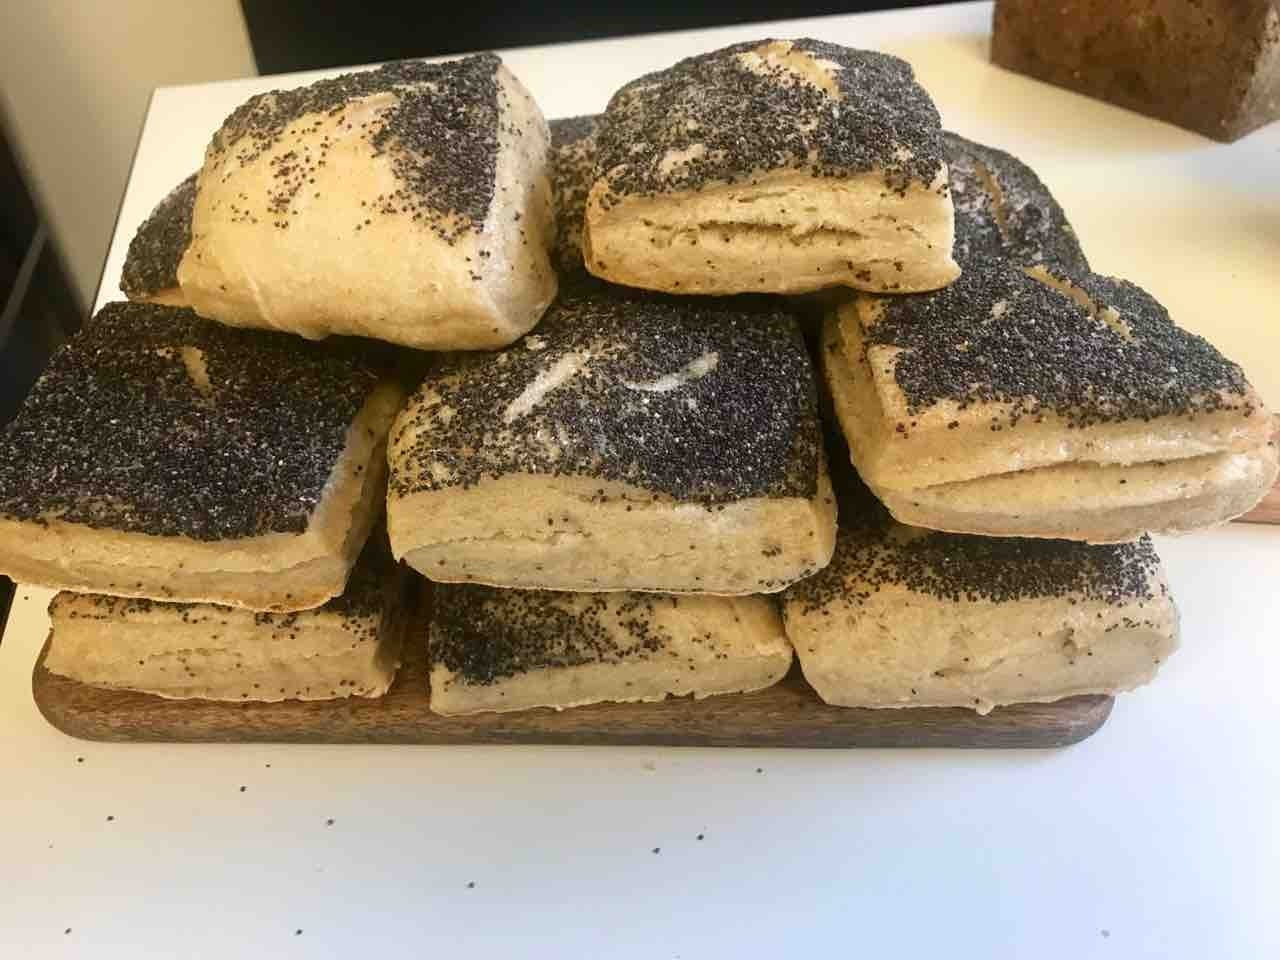 Small bread from Les Petits Boudins